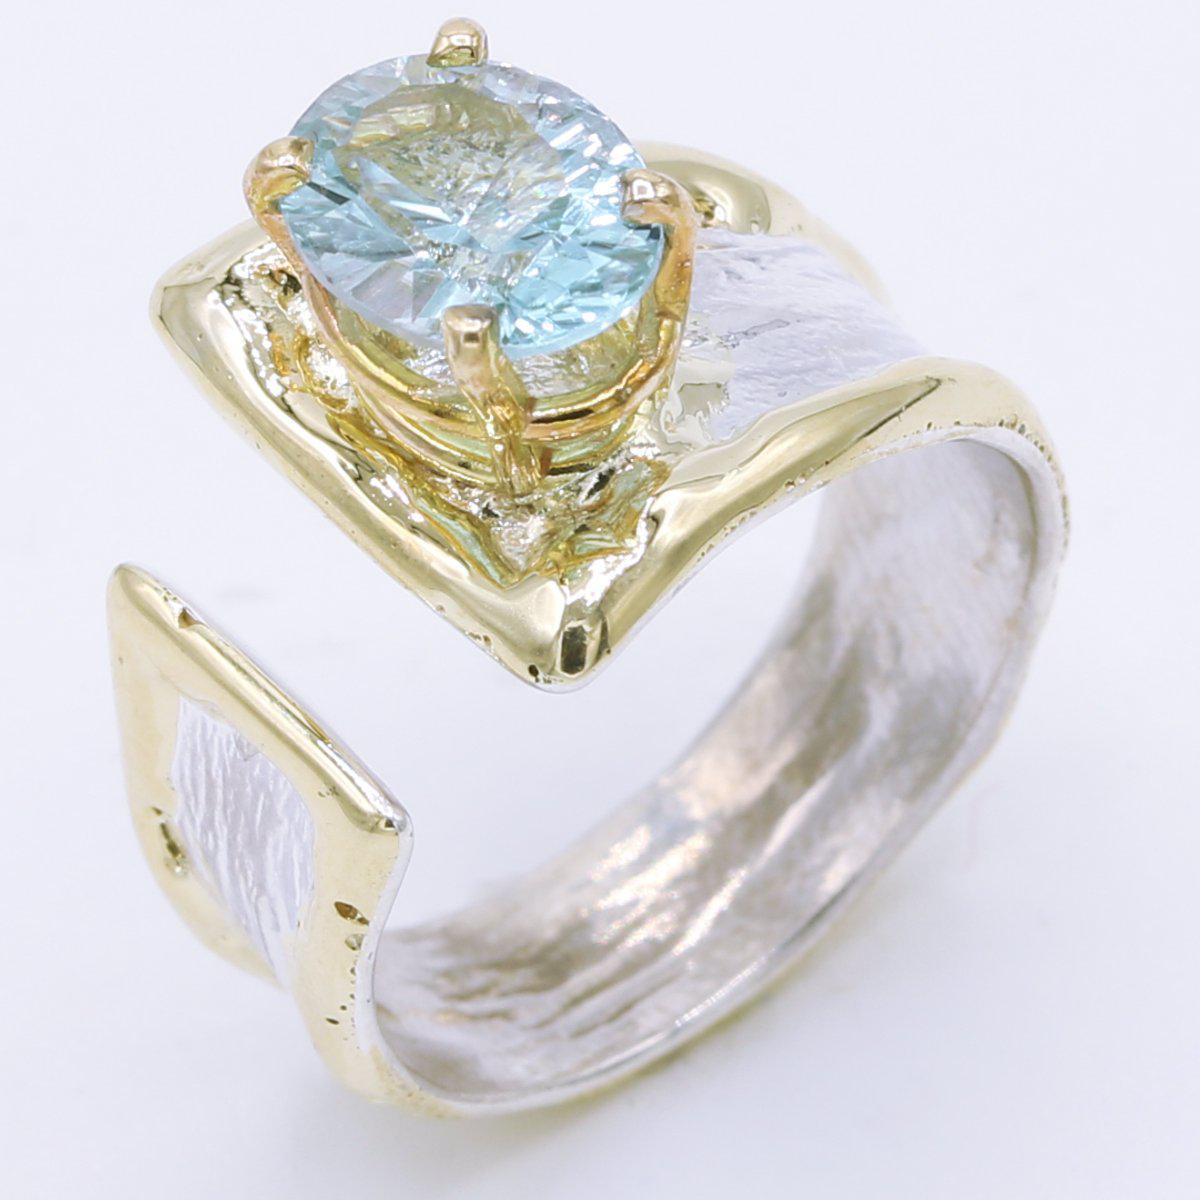 14K Gold & Crystalline Silver Sky Blue Topaz Ring - 34908-Fusion Designs-Renee Taylor Gallery